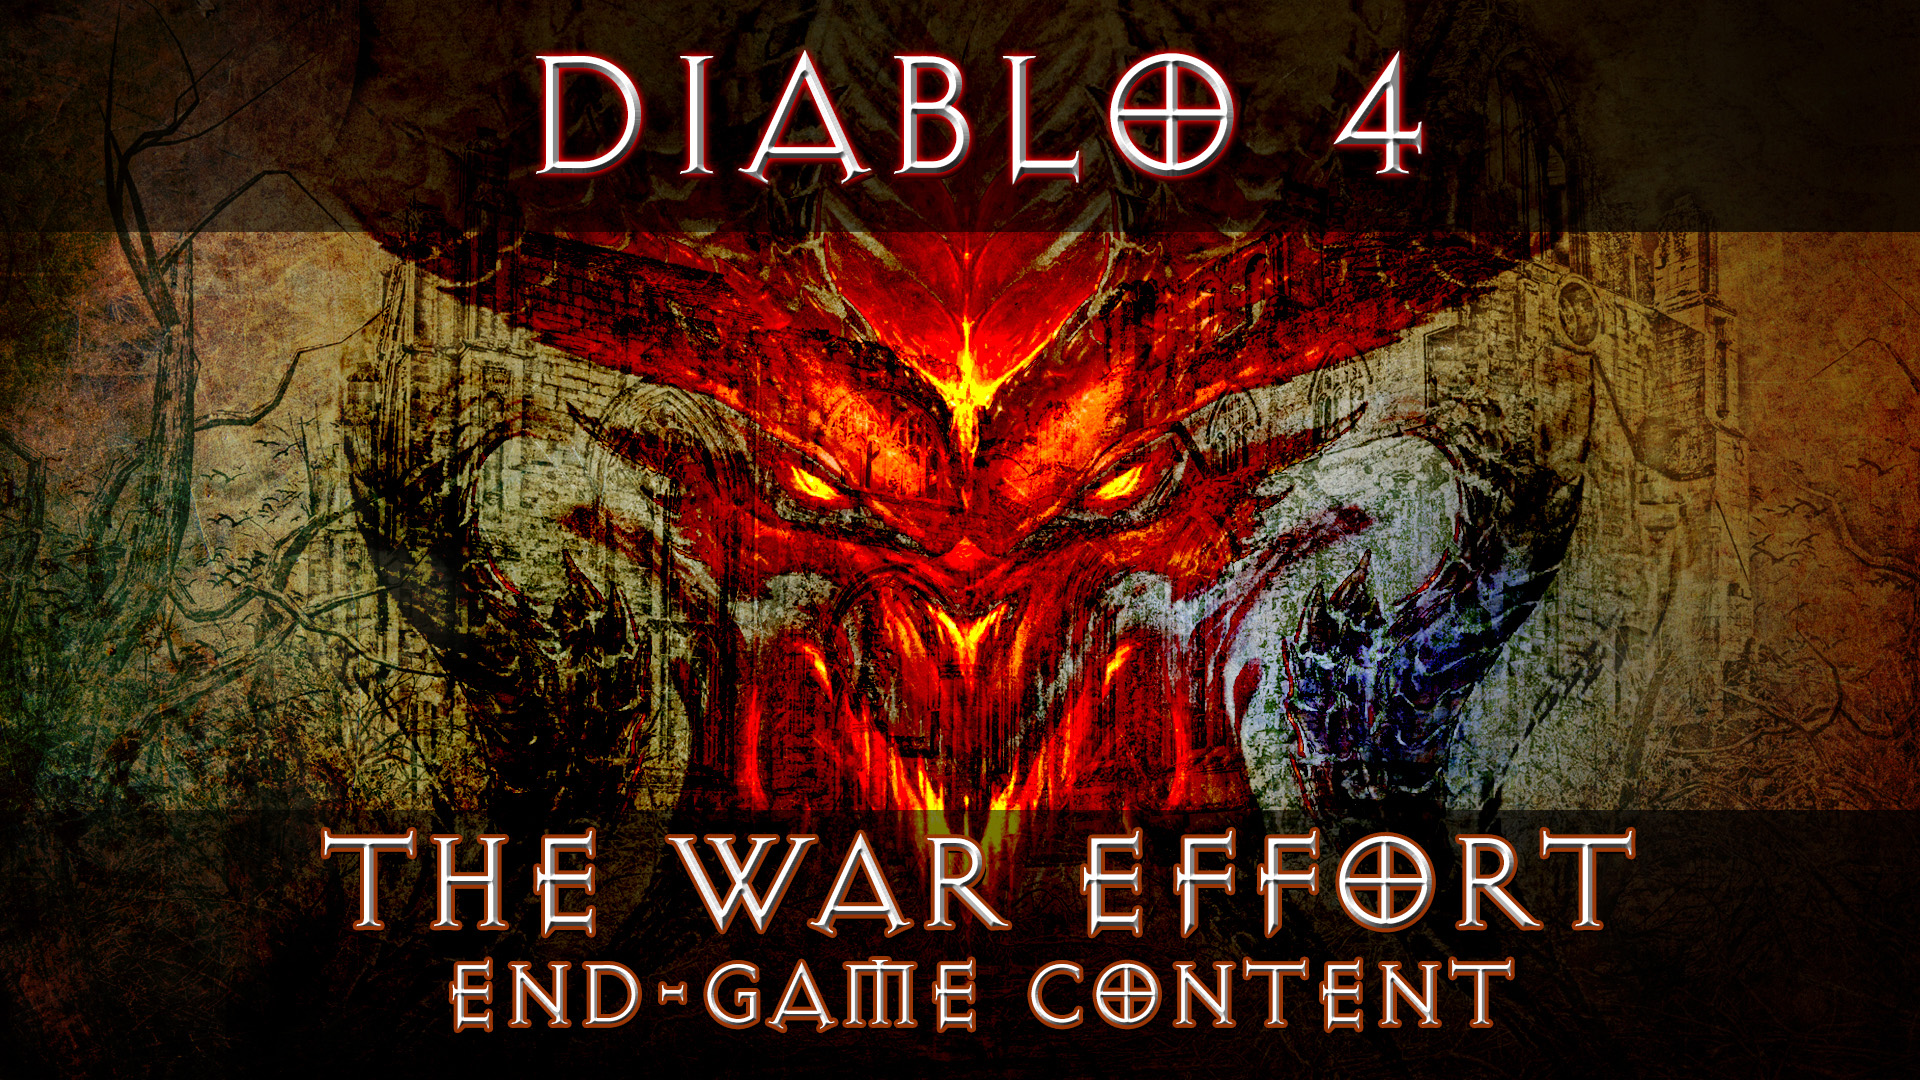 Diablo 4 The War Effort